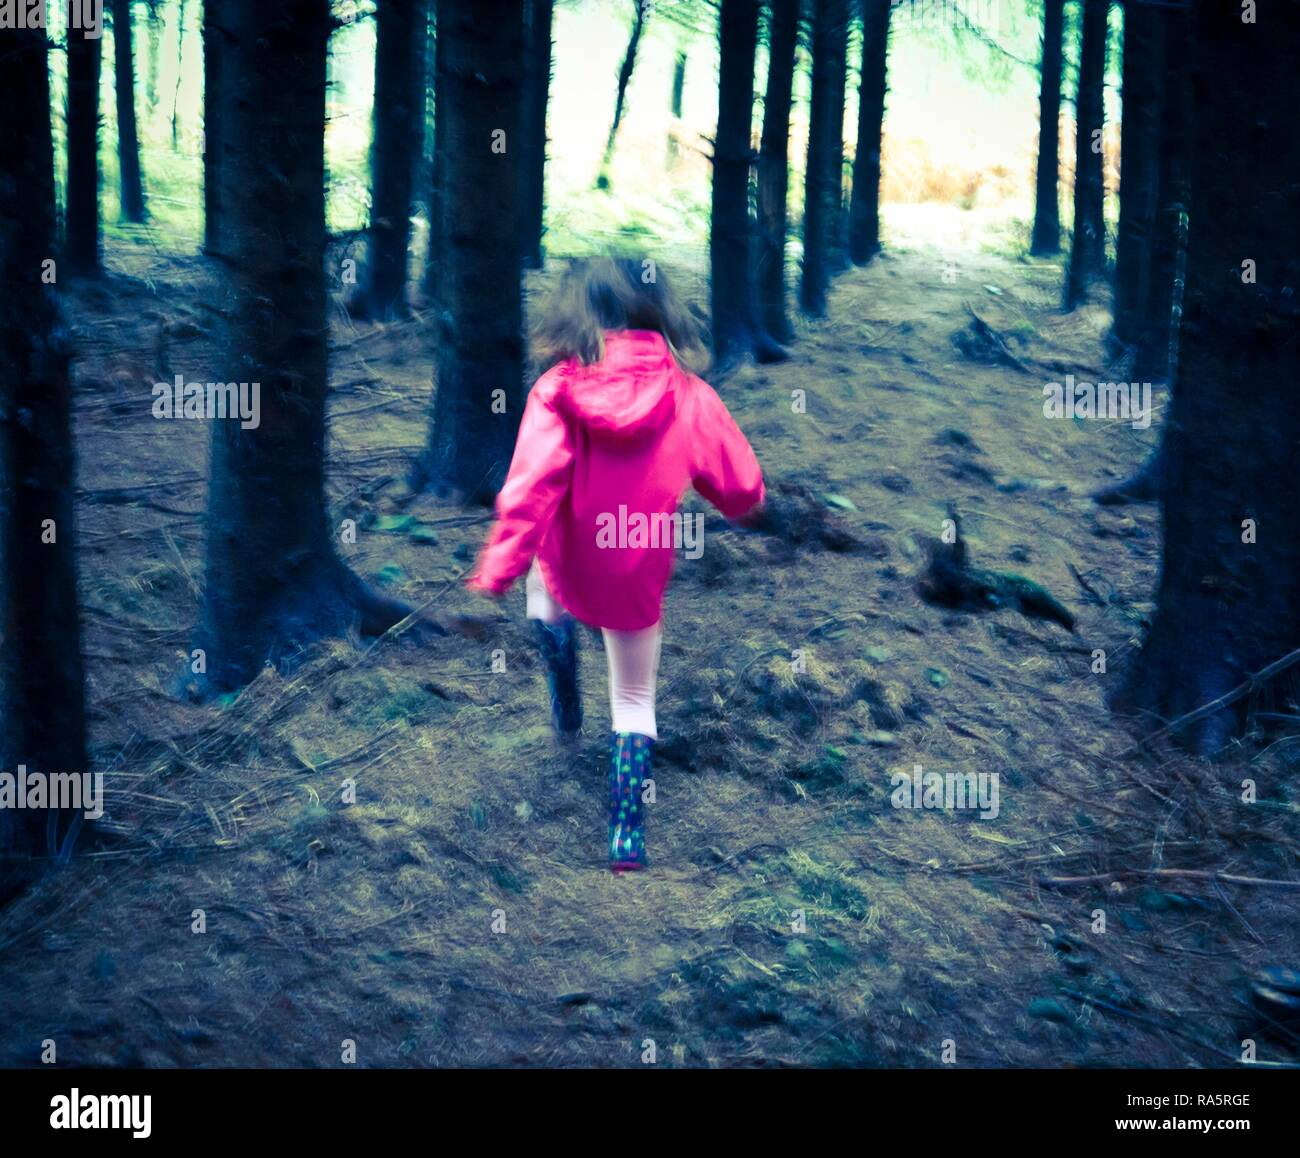 Young girl in pink coat running towards light out of forest, United Kingdom - Stock Image